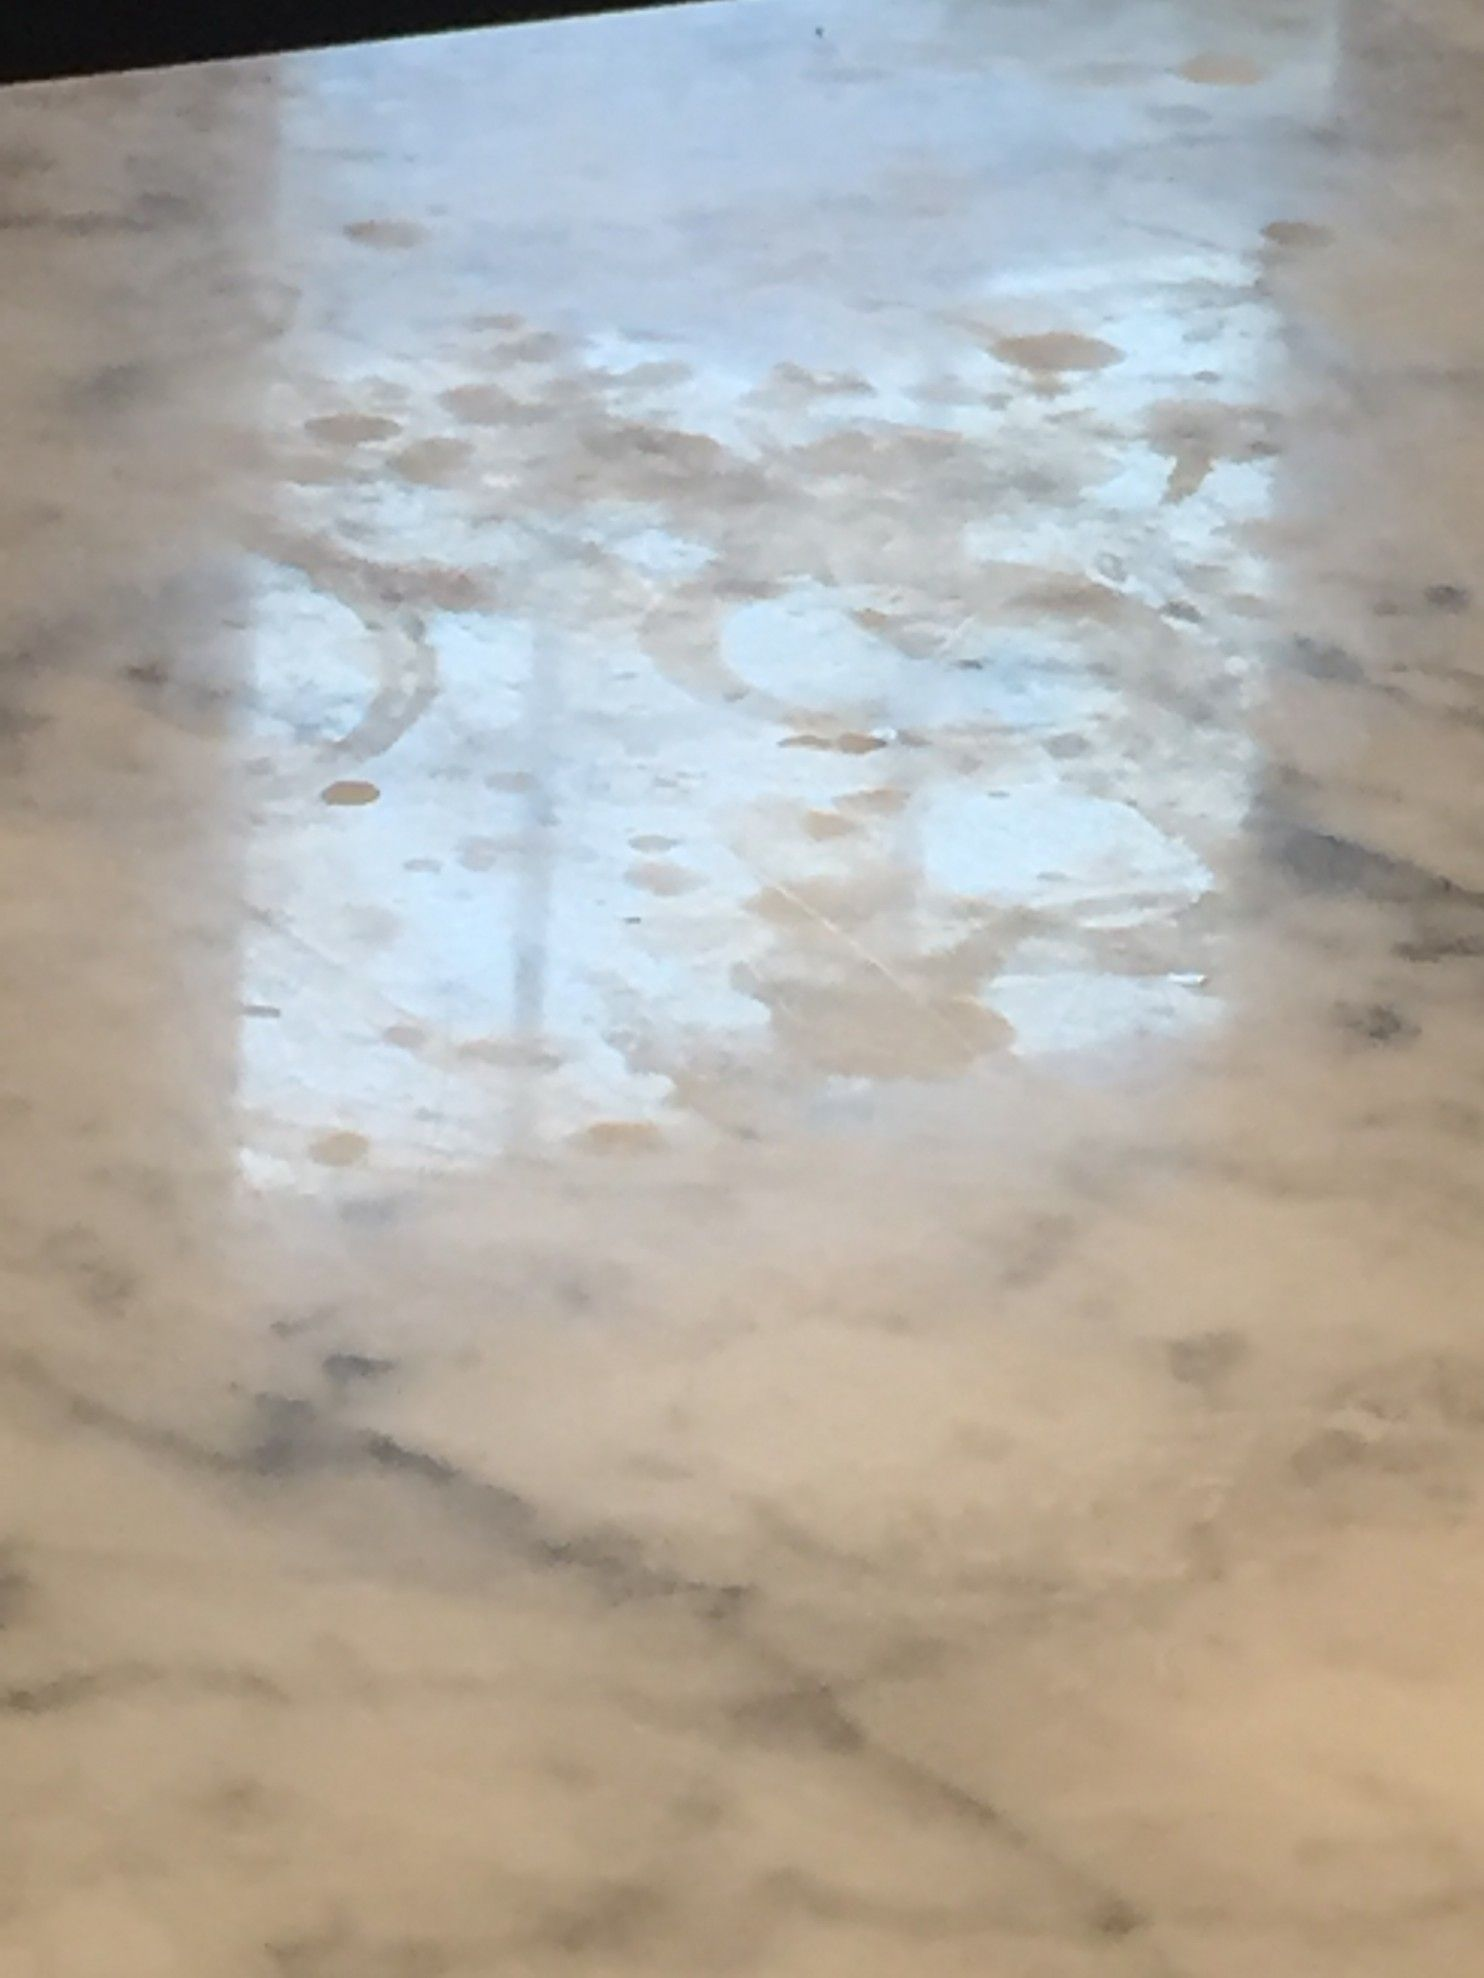 How to get rid of marks on marble  Cleaning marble countertops